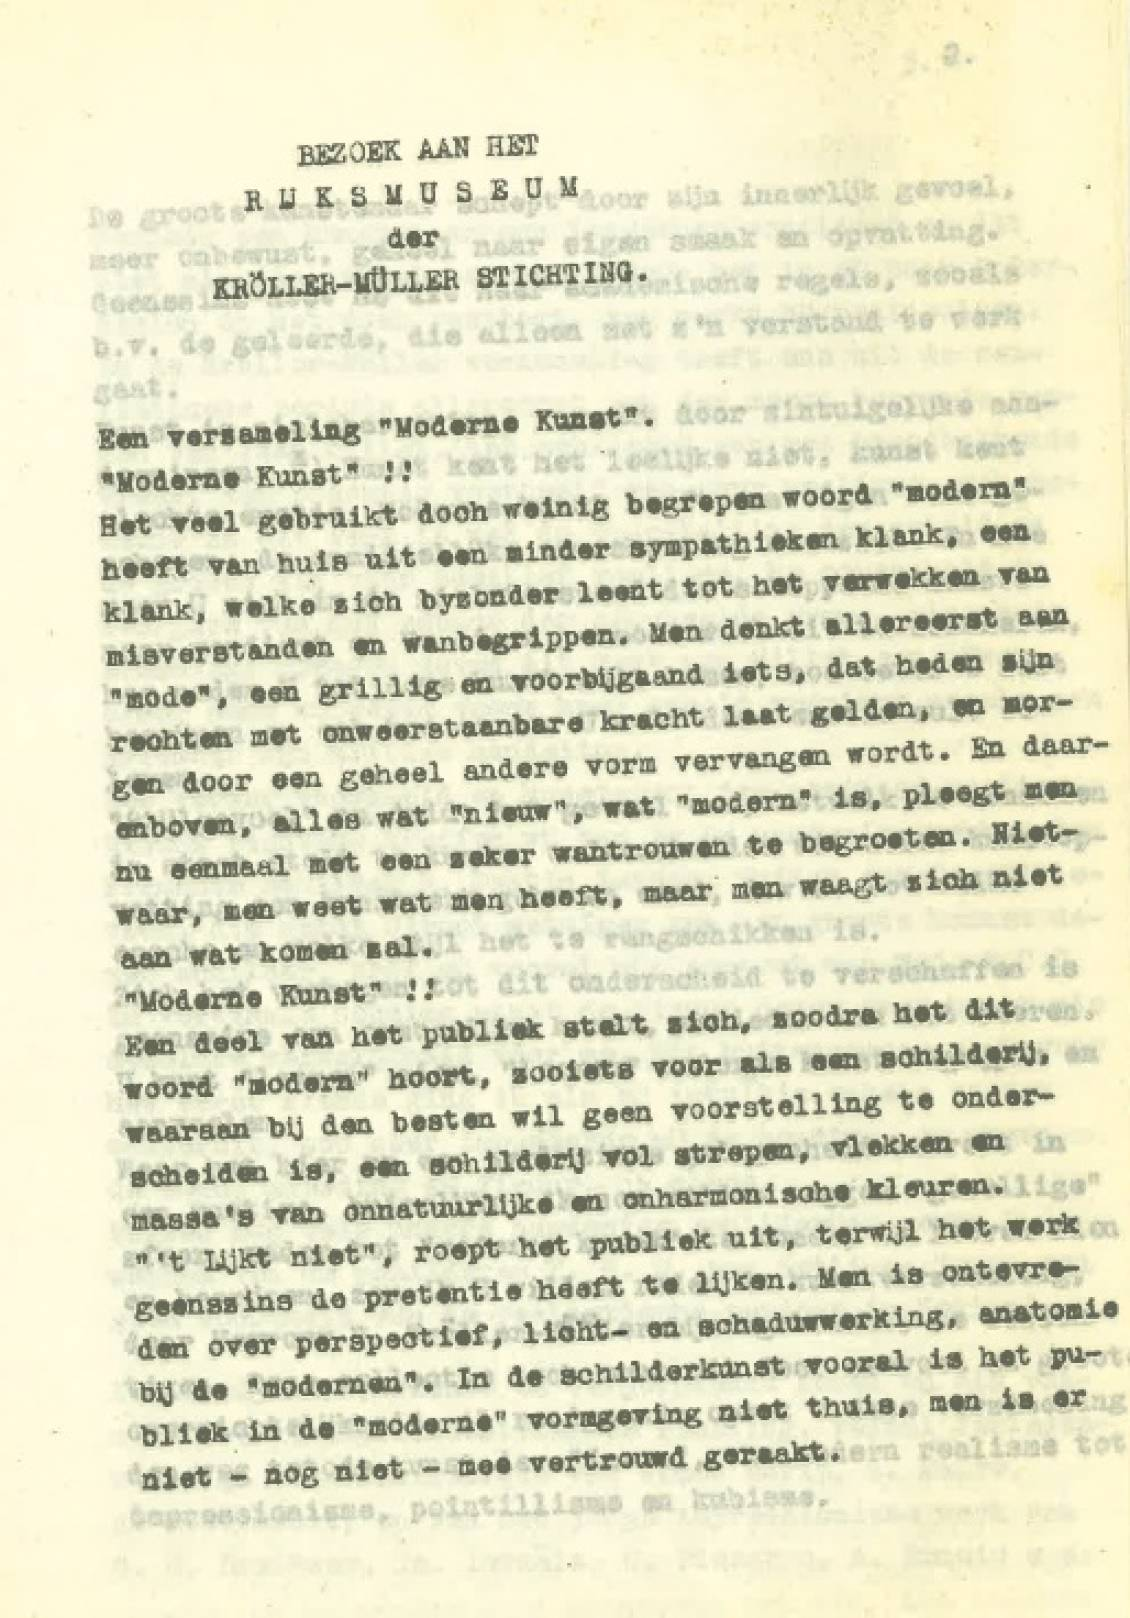 Willy Auping, Opstel over de collectie van Sichting Kröller-Müller, 9 juli 1937